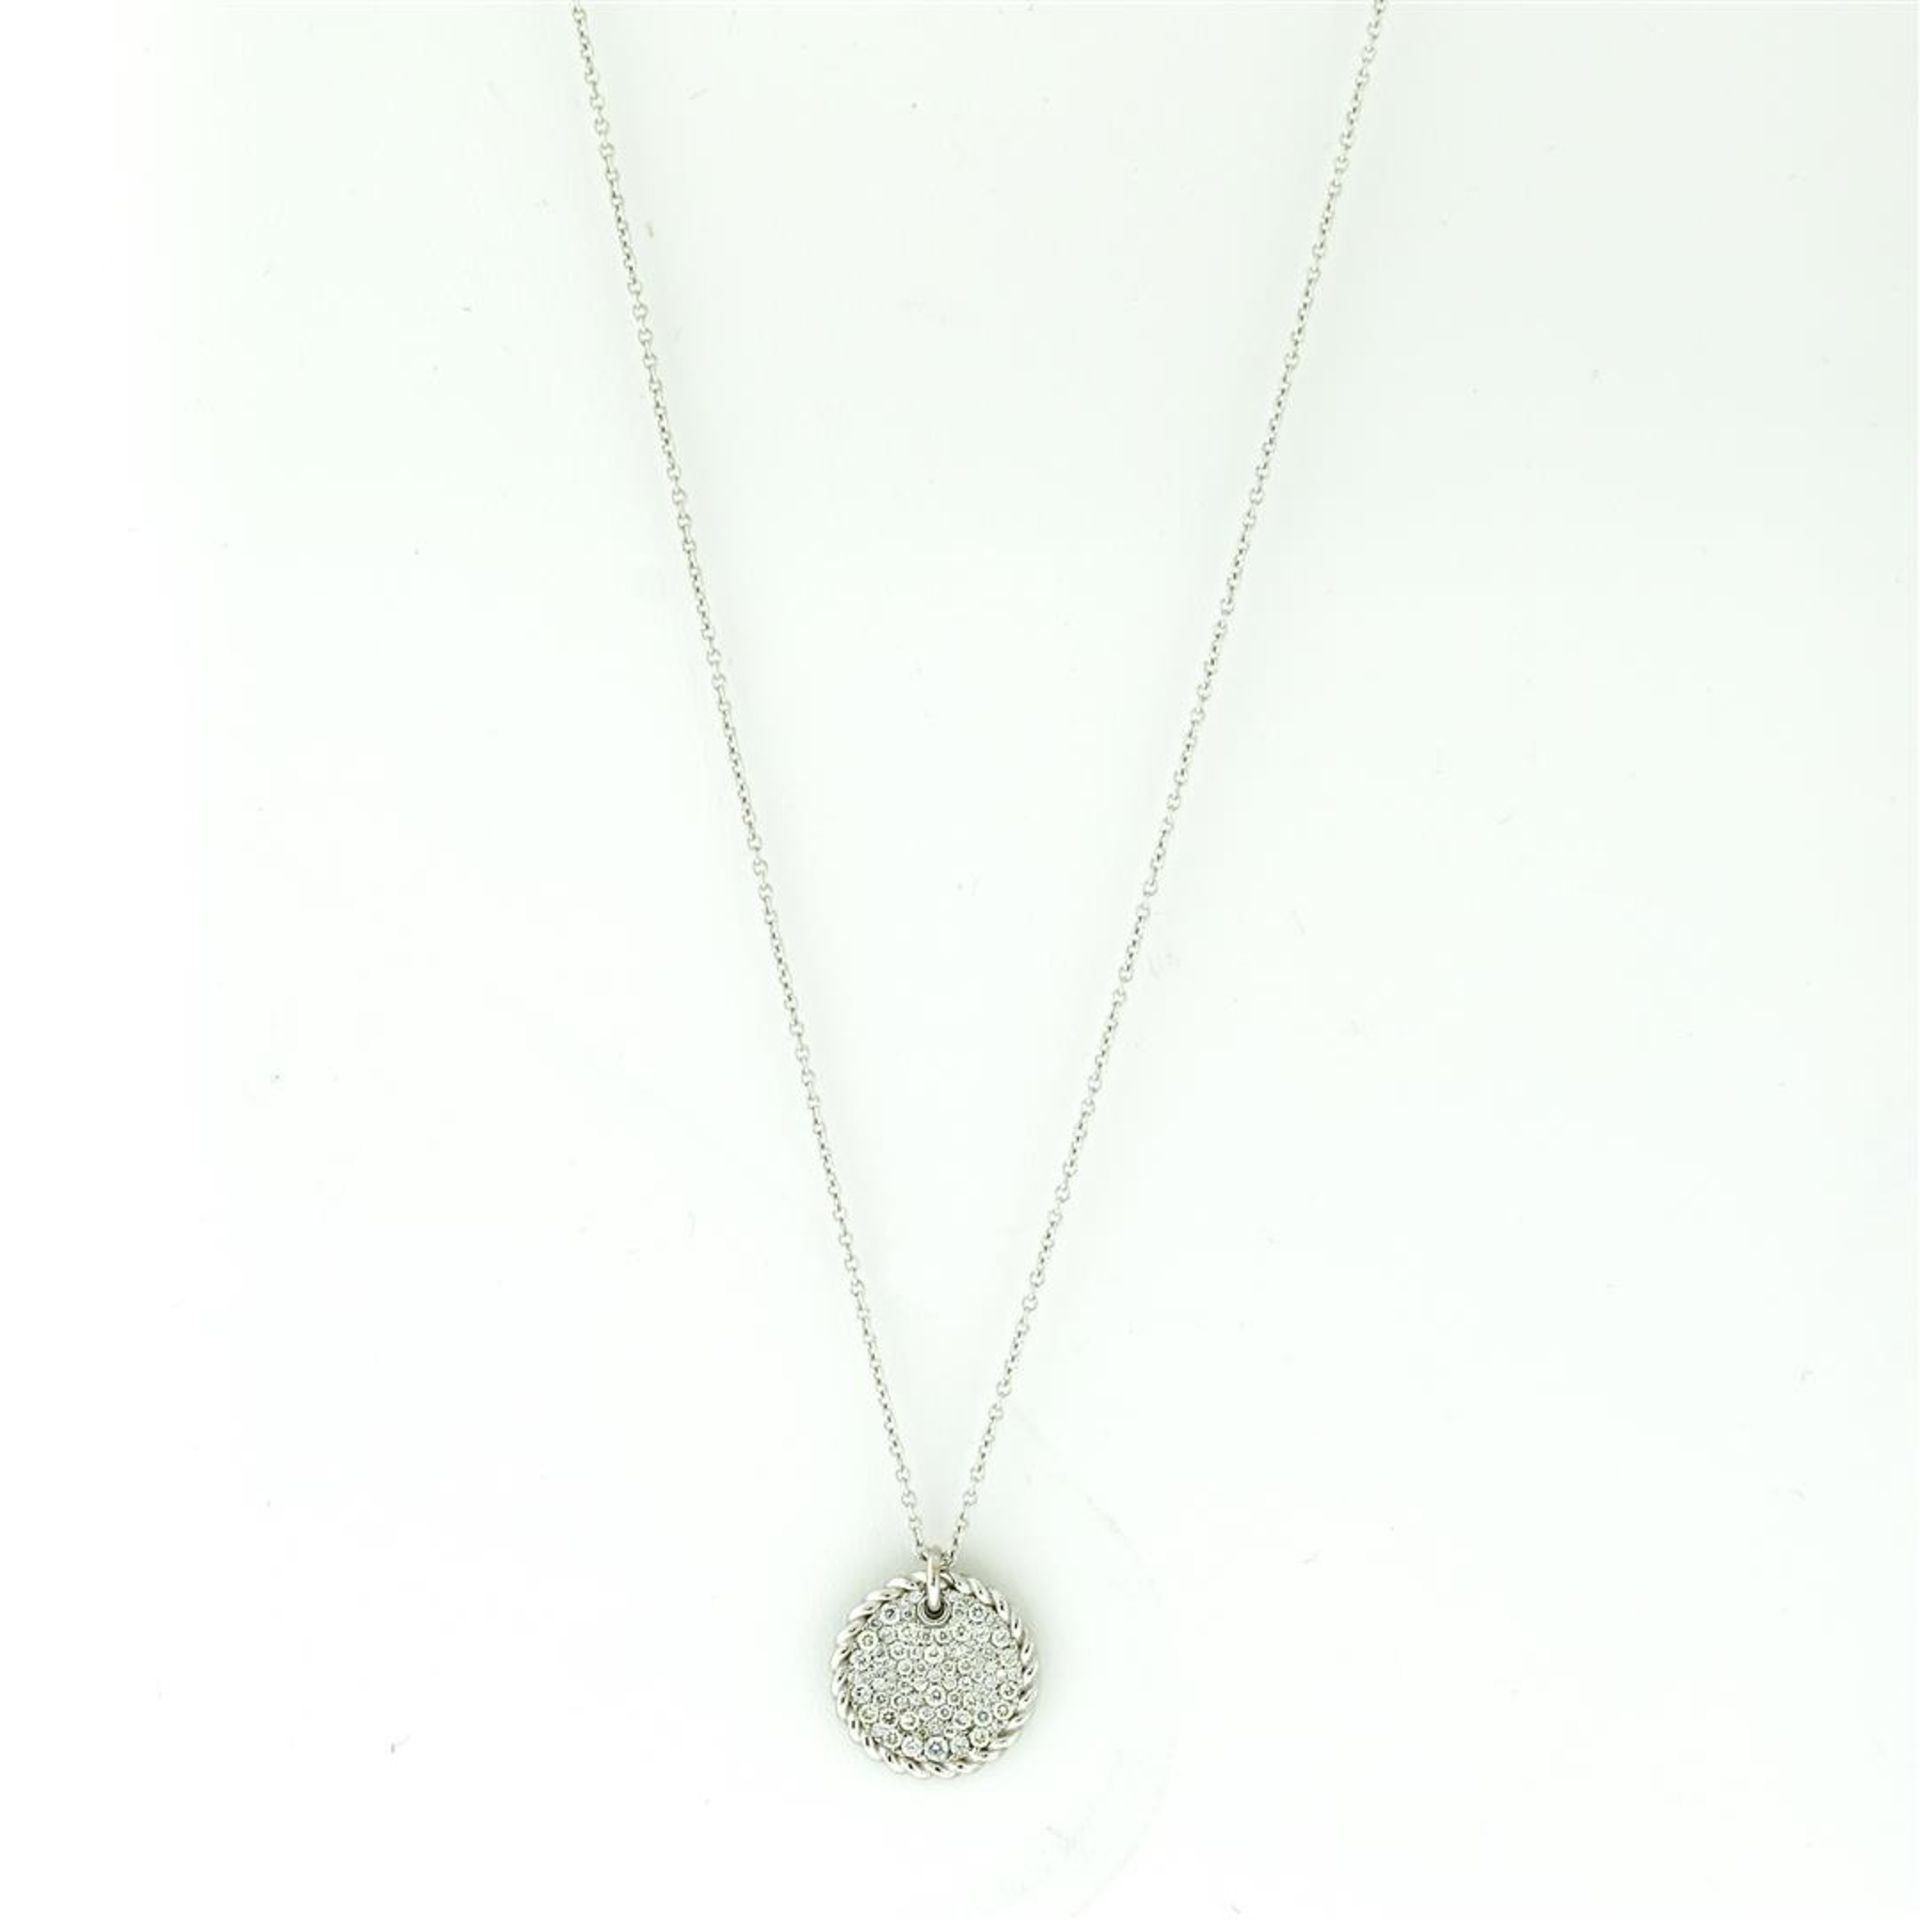 New 18k White Gold Diamond Cable Pendant with with 18K White Gold Chain - Image 4 of 7